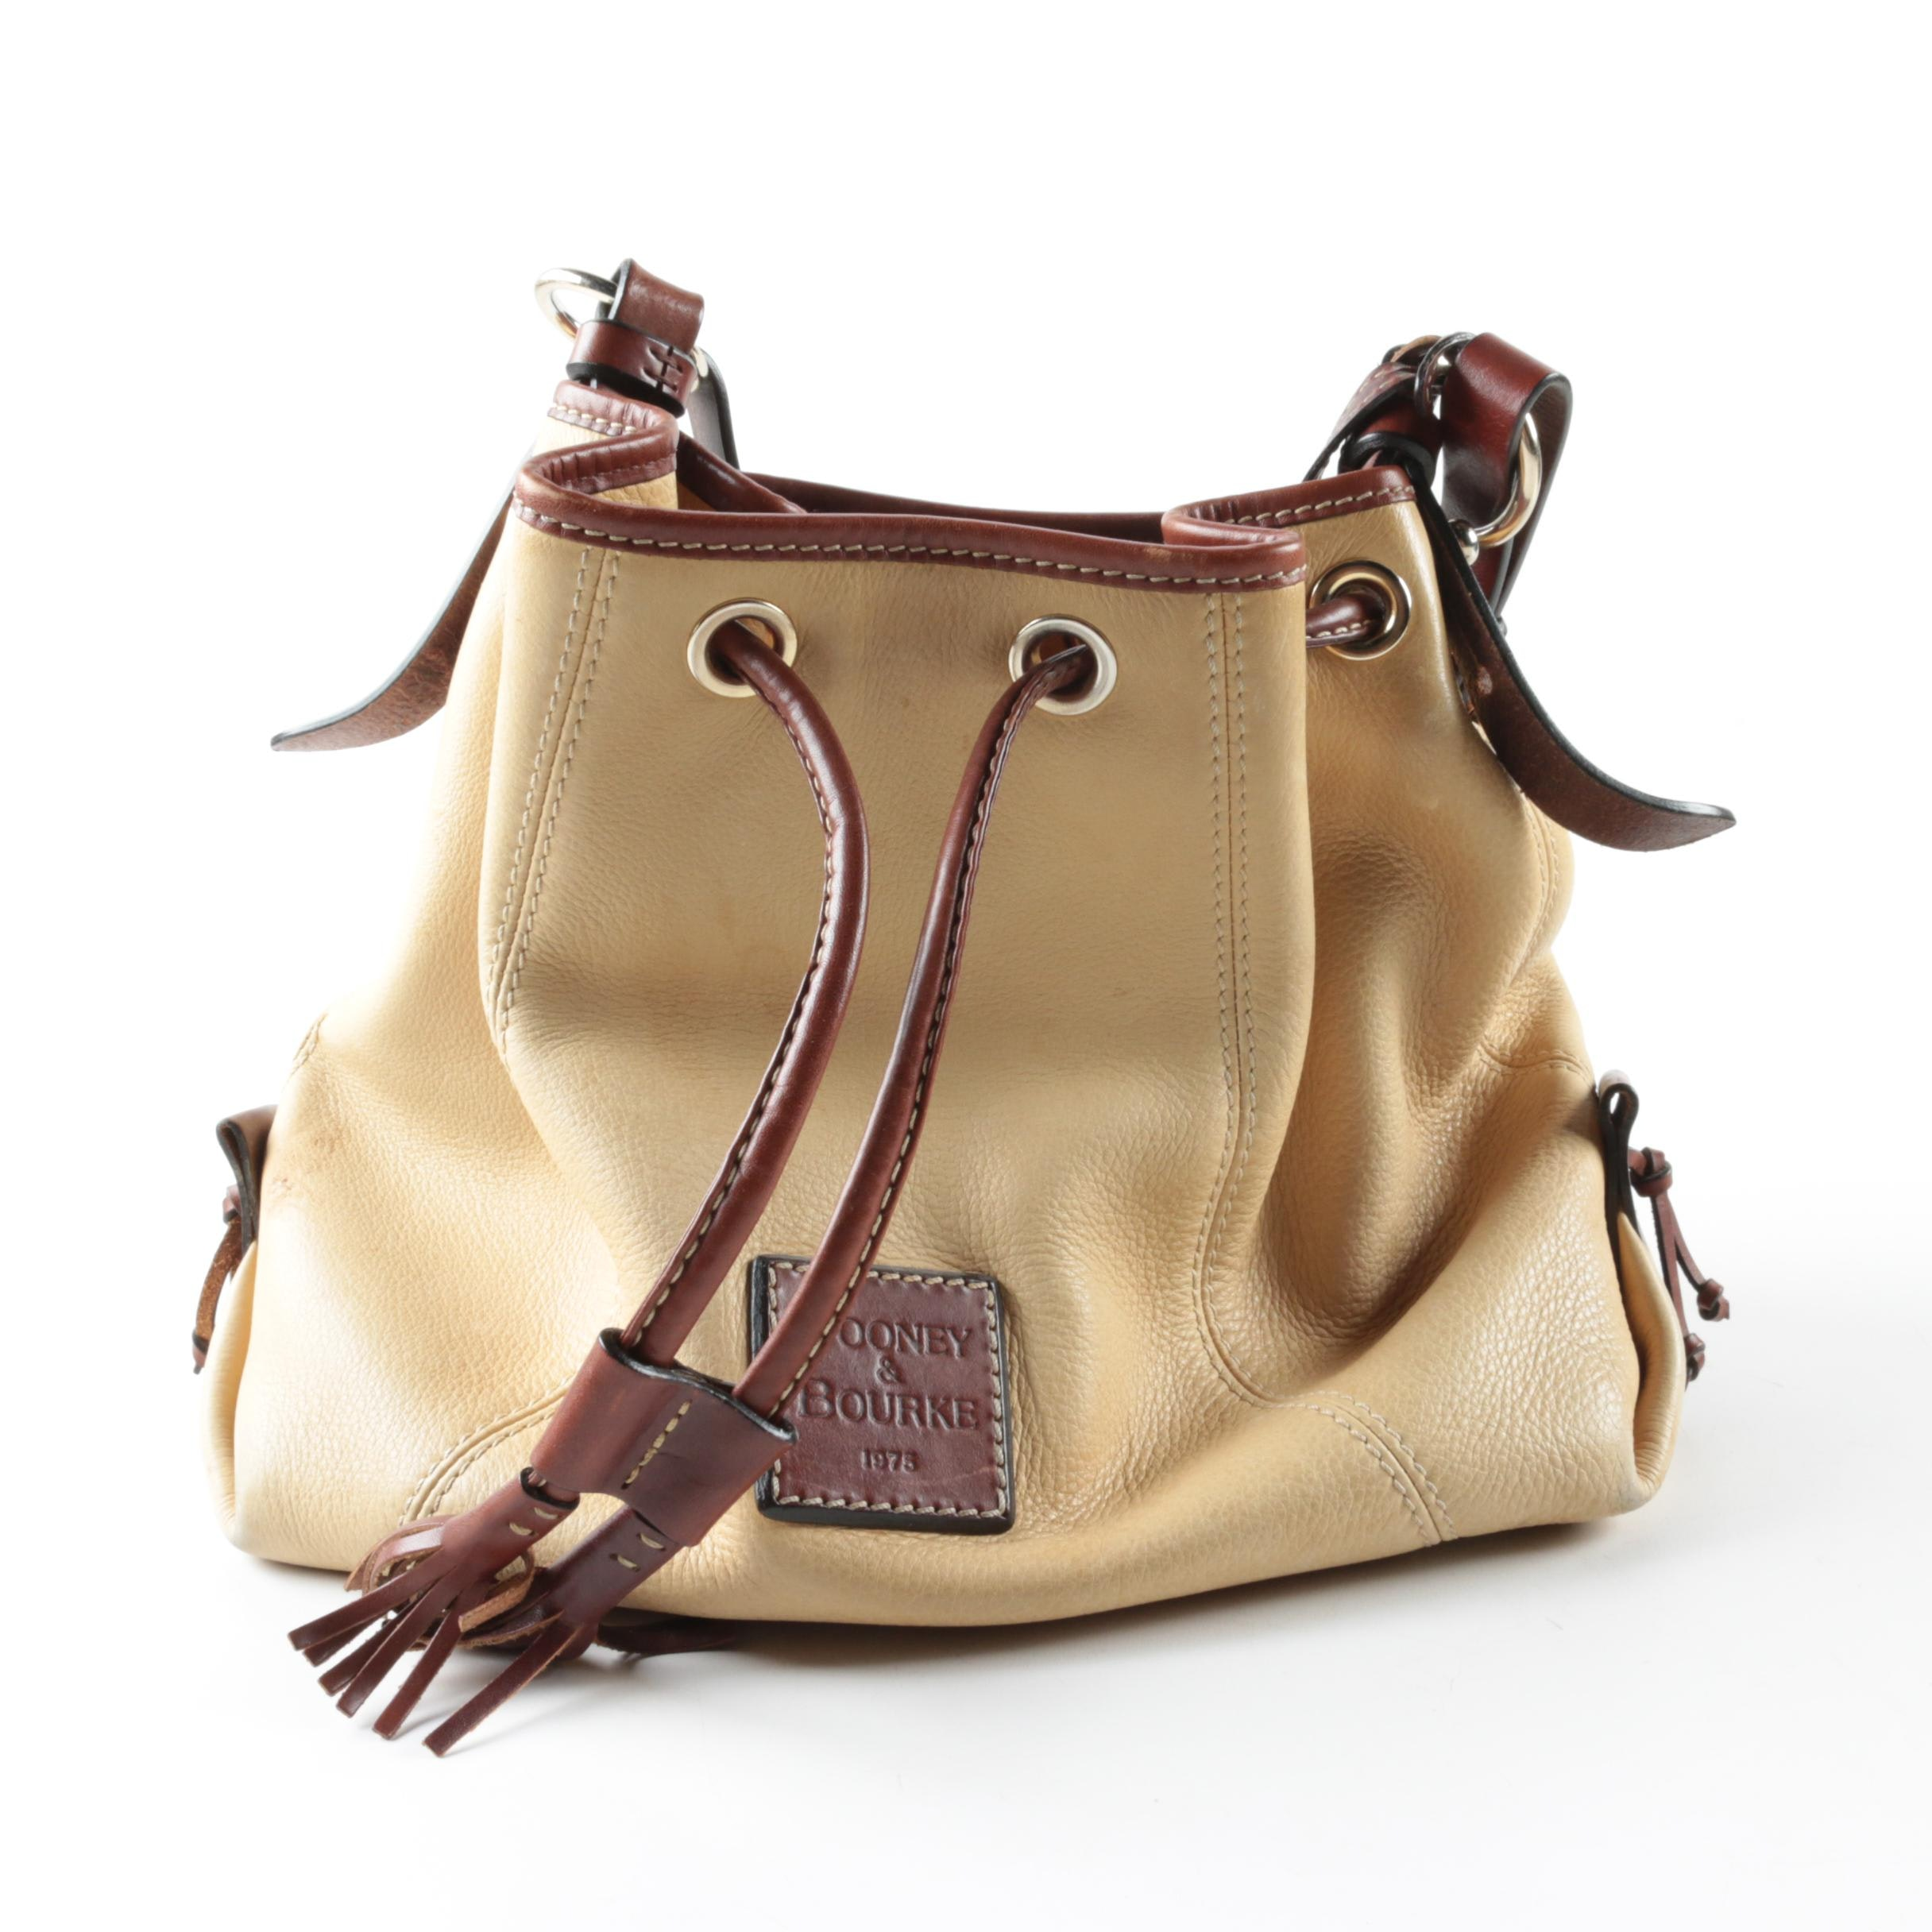 Dooney & Bourke Cream Leather Bucket Bag